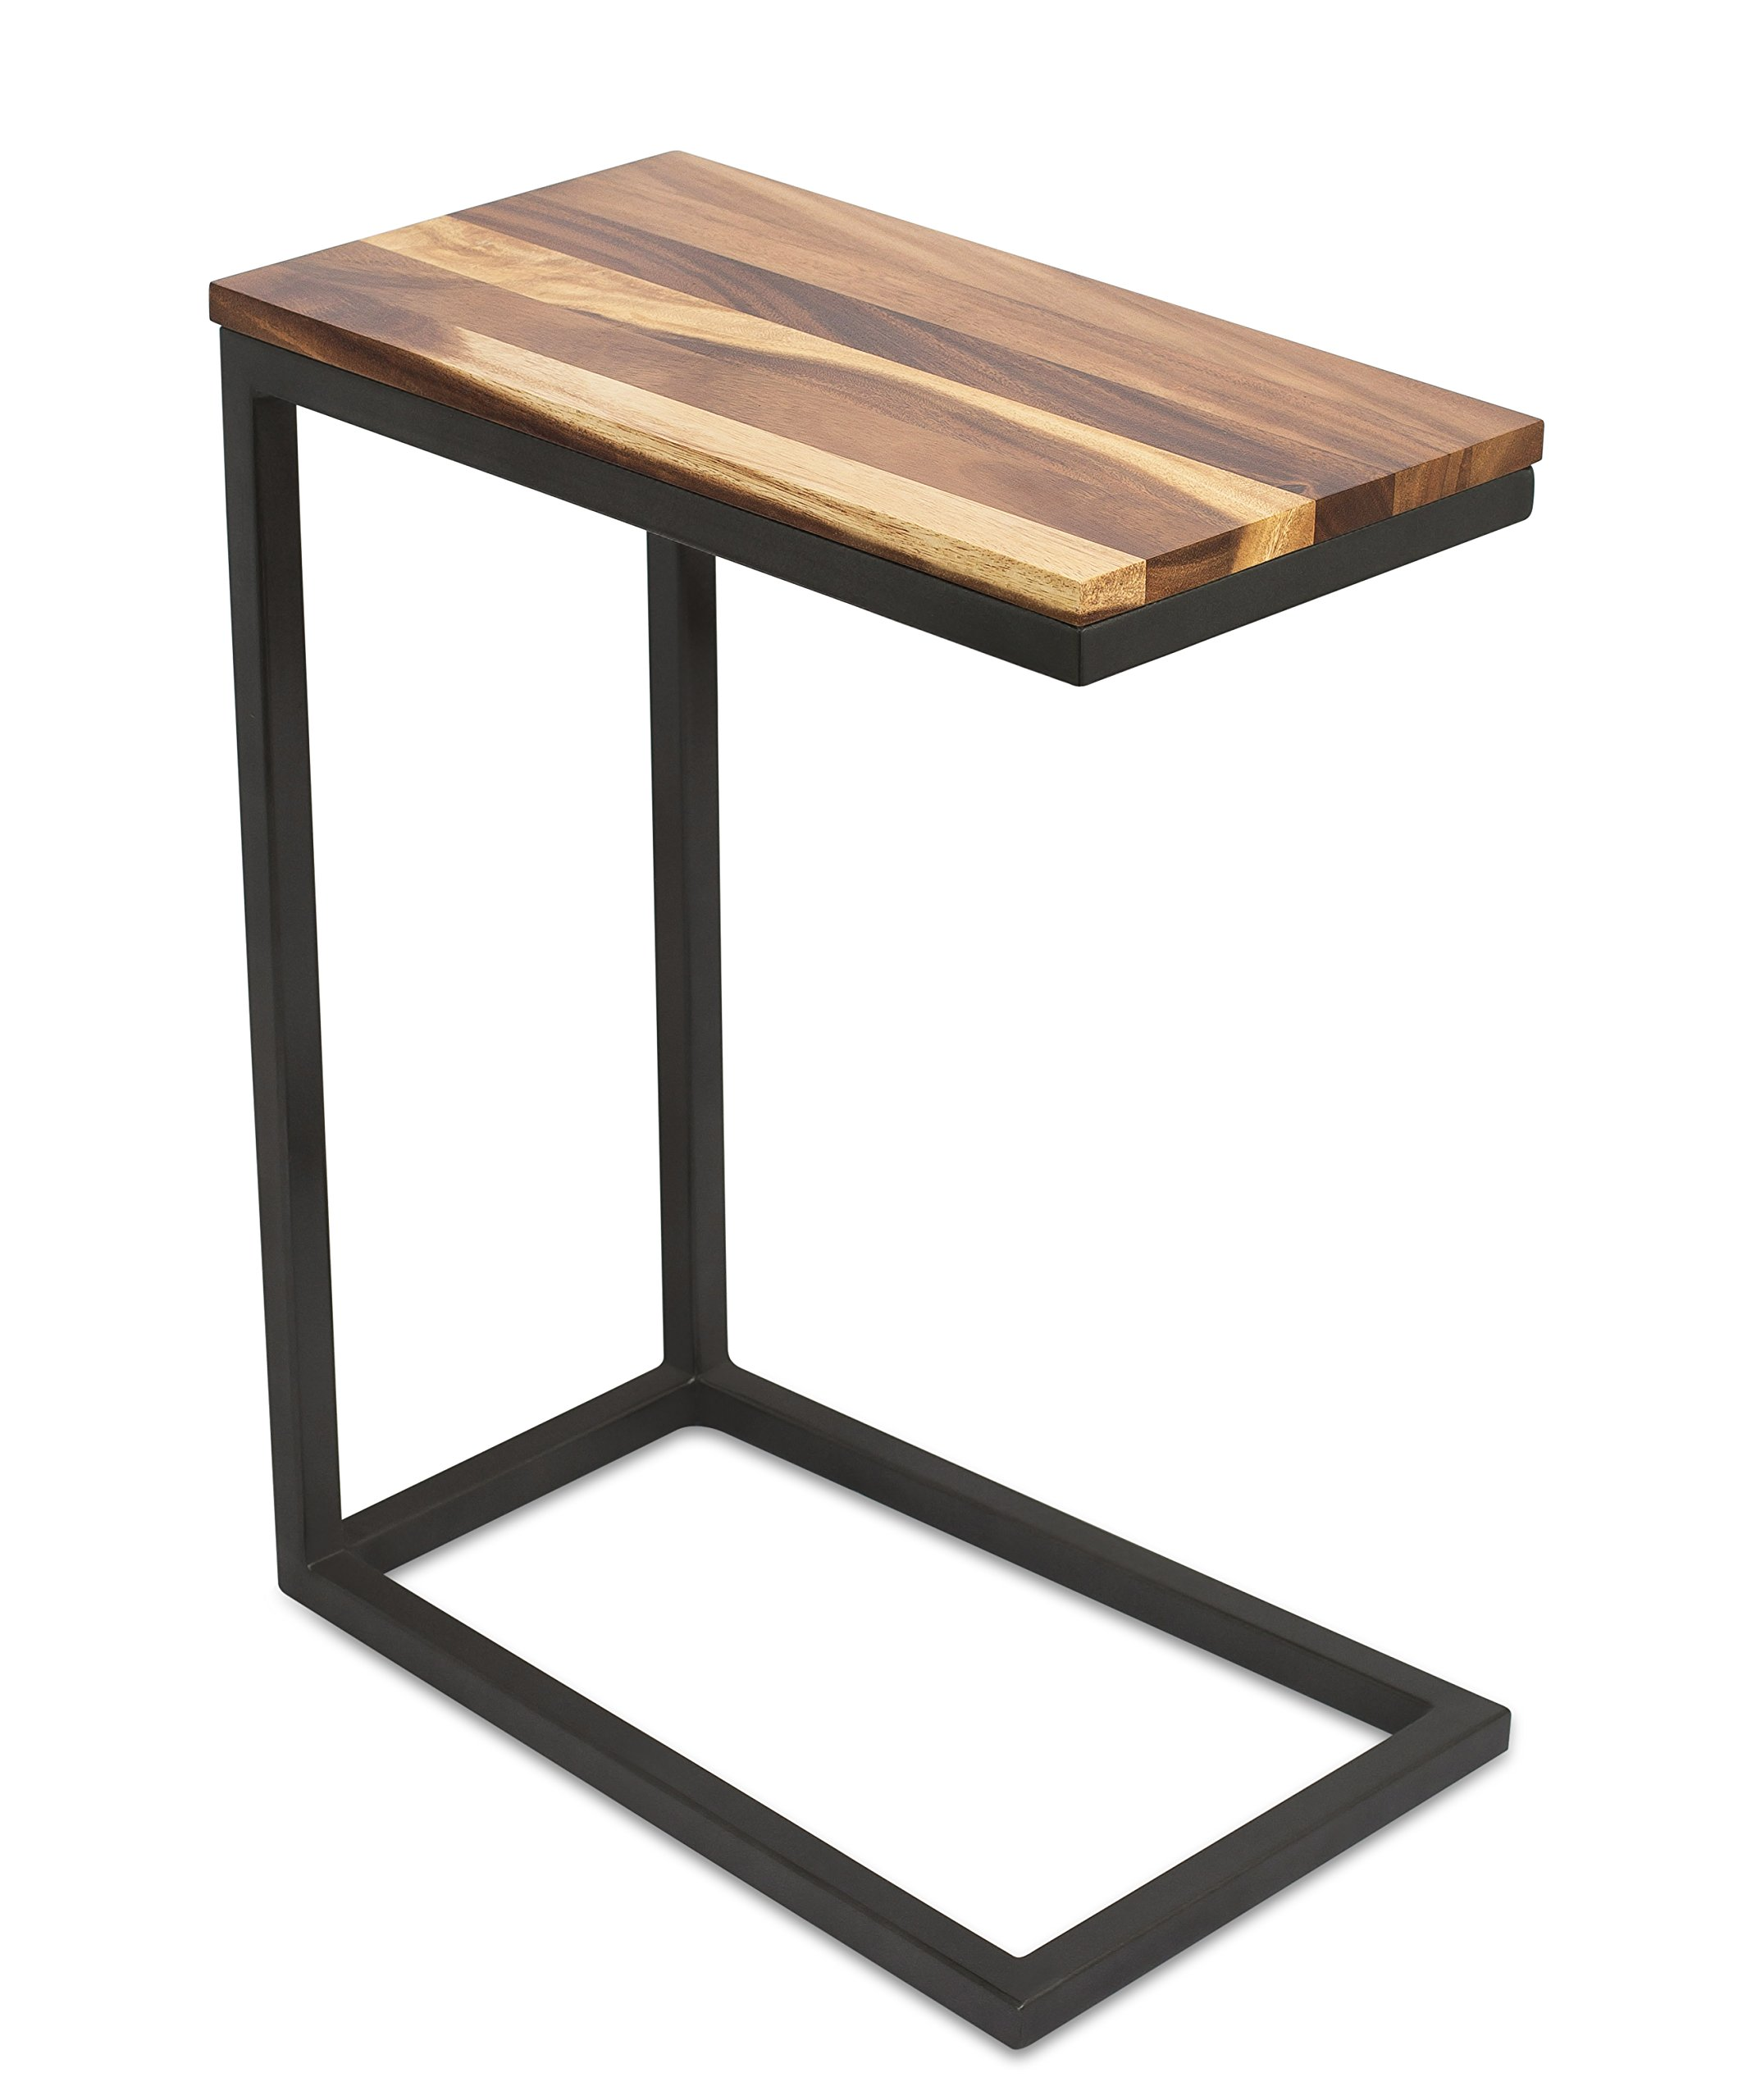 BirdRock Home Acacia Wood TV Tray Side Table | Industrial Design | Natural Wood Bed Sofa Snack End Table